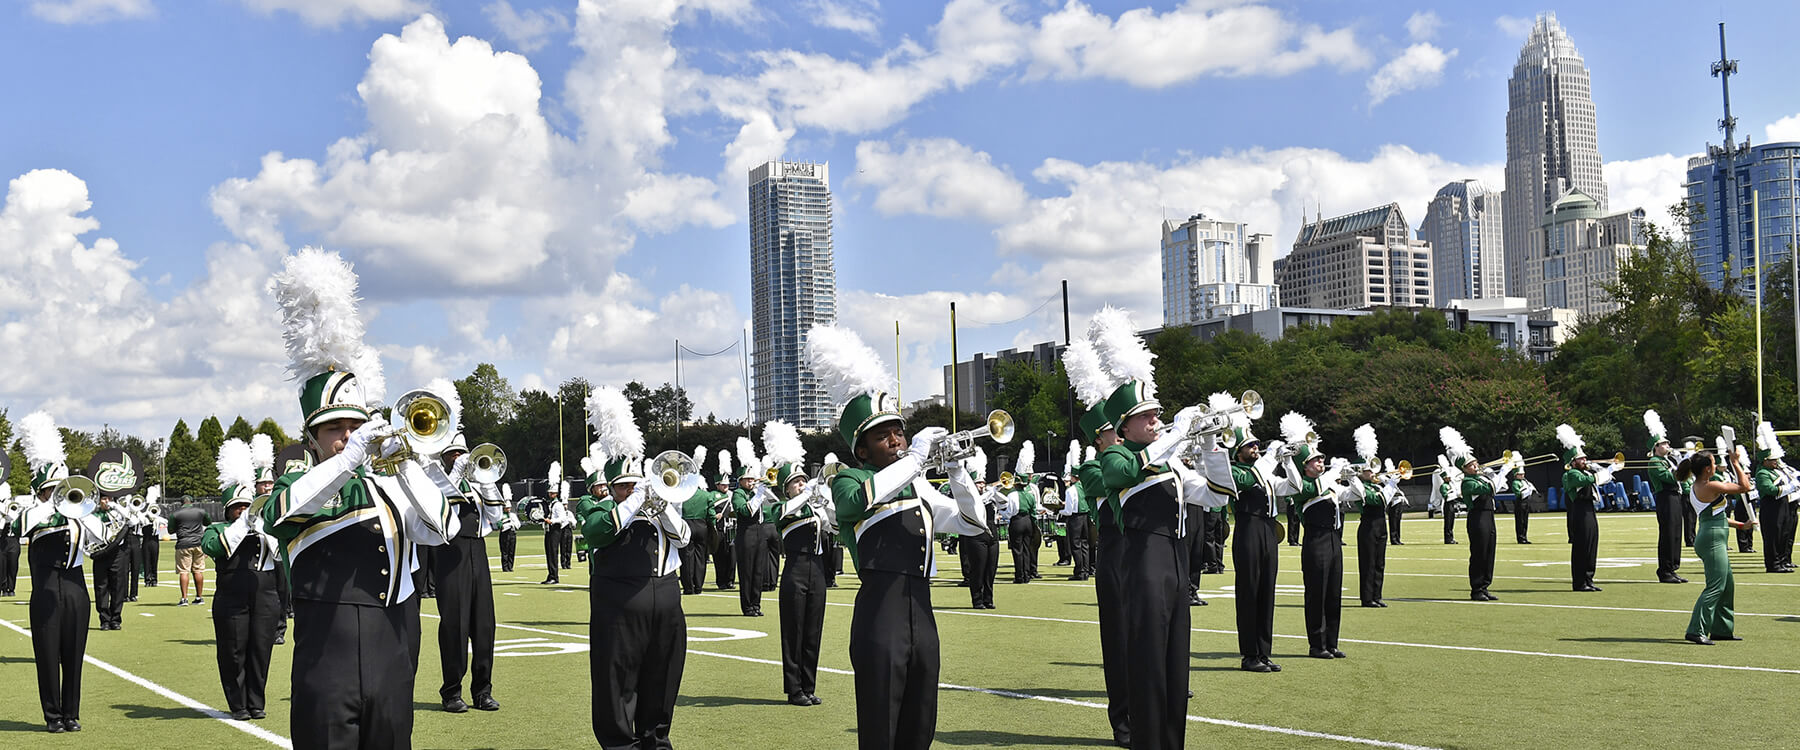 Marching band performs at Bank of America Stadium